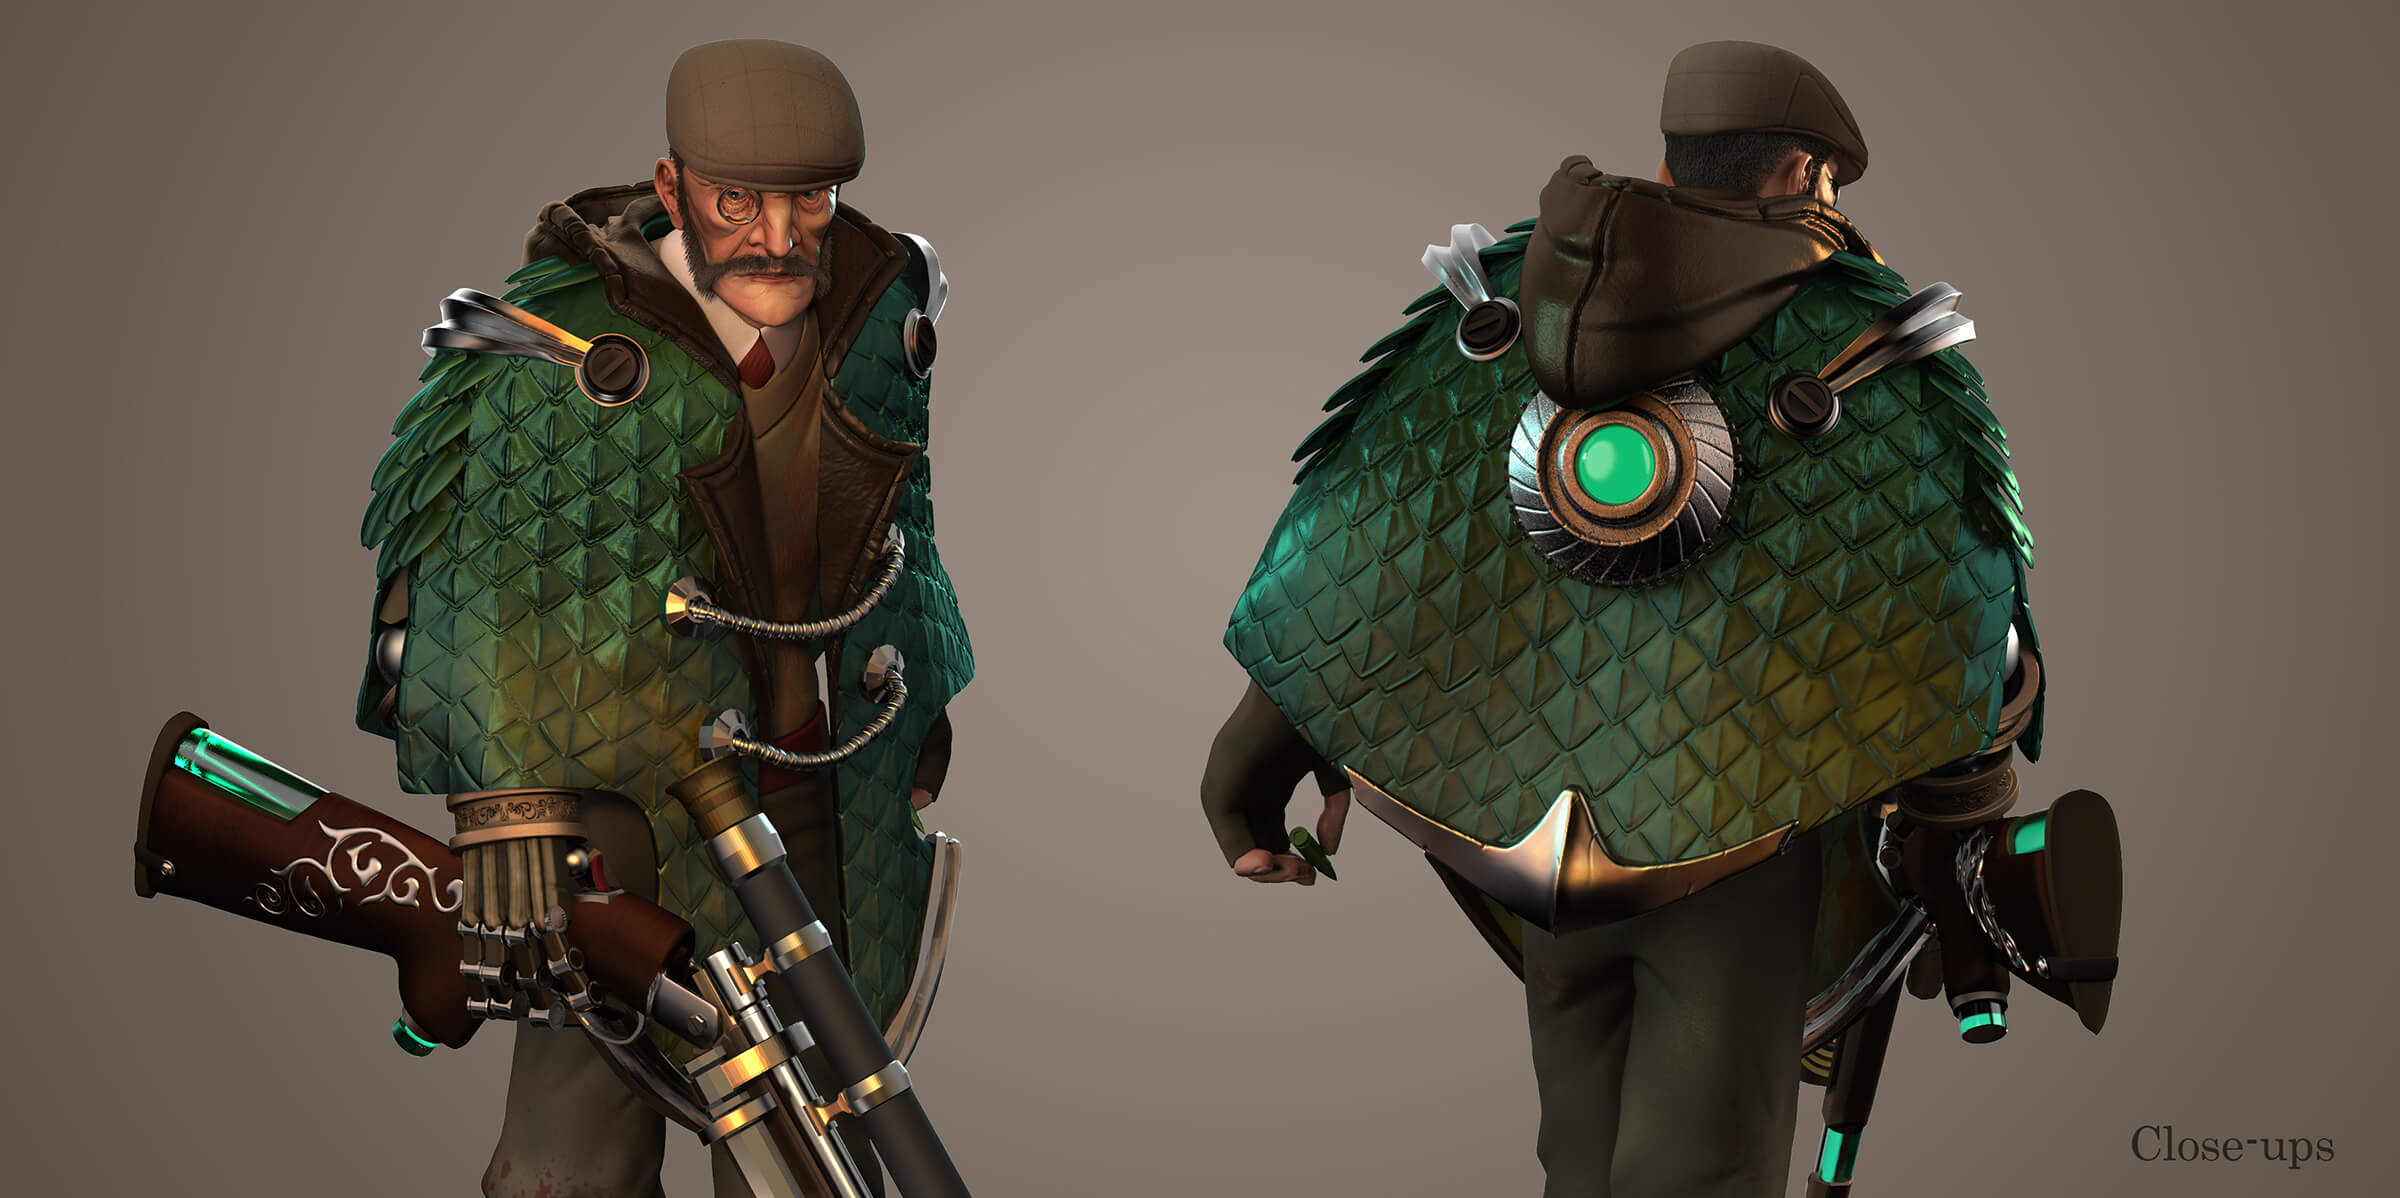 Close-up of a traditionally dressed man with a futuristic cape and gun